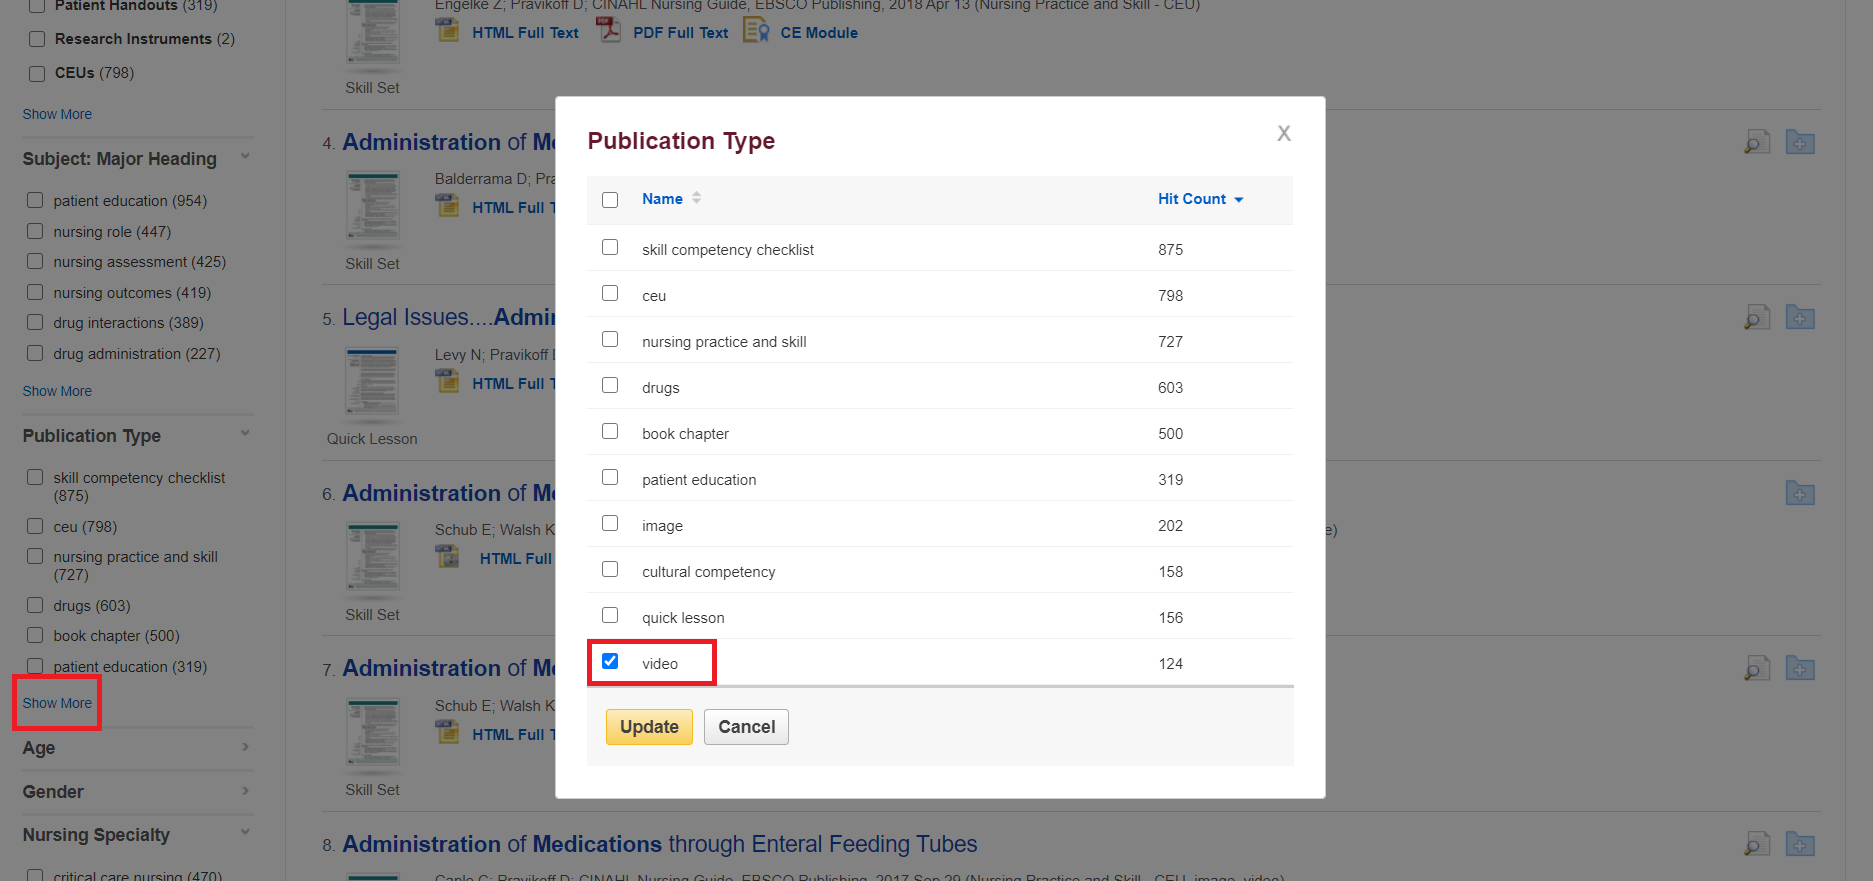 Select video as publication type in Nursing Reference Center Plus